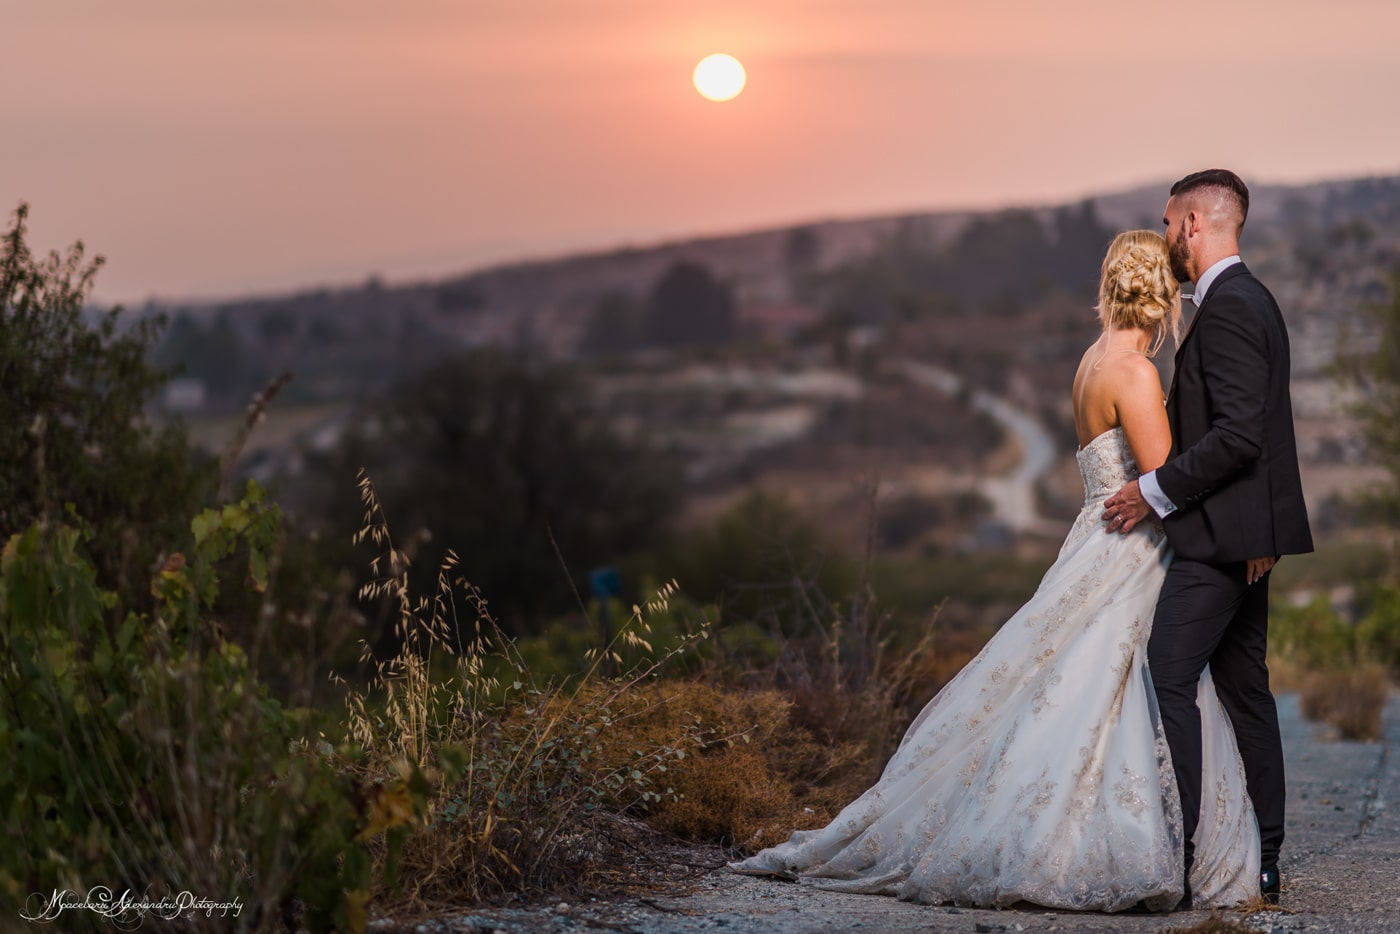 sublime moment captured by Cyprus wedding photographer Alexandru Macelaru